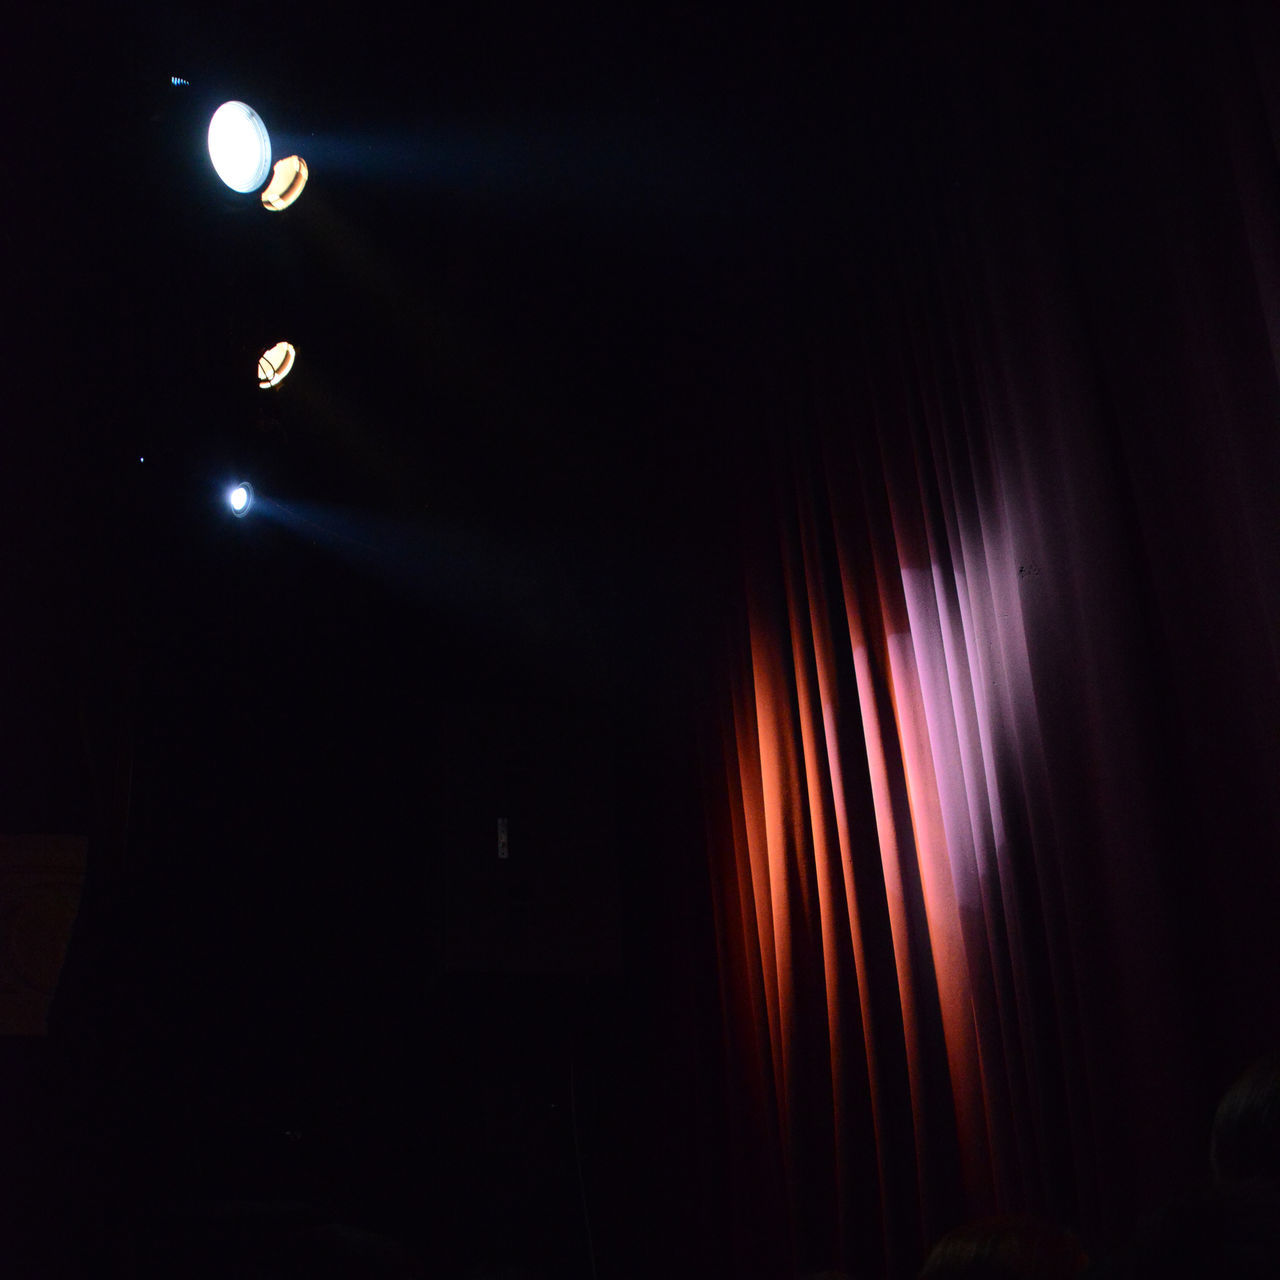 Before Blixa Bargeld and Teho Teardo live Bank Lights Concert Concert Photography Curtain Dark Illuminated Indoors  Lighting Equipment No People Performance Side Scenes Slips Stage Wing Wing Flats Wings